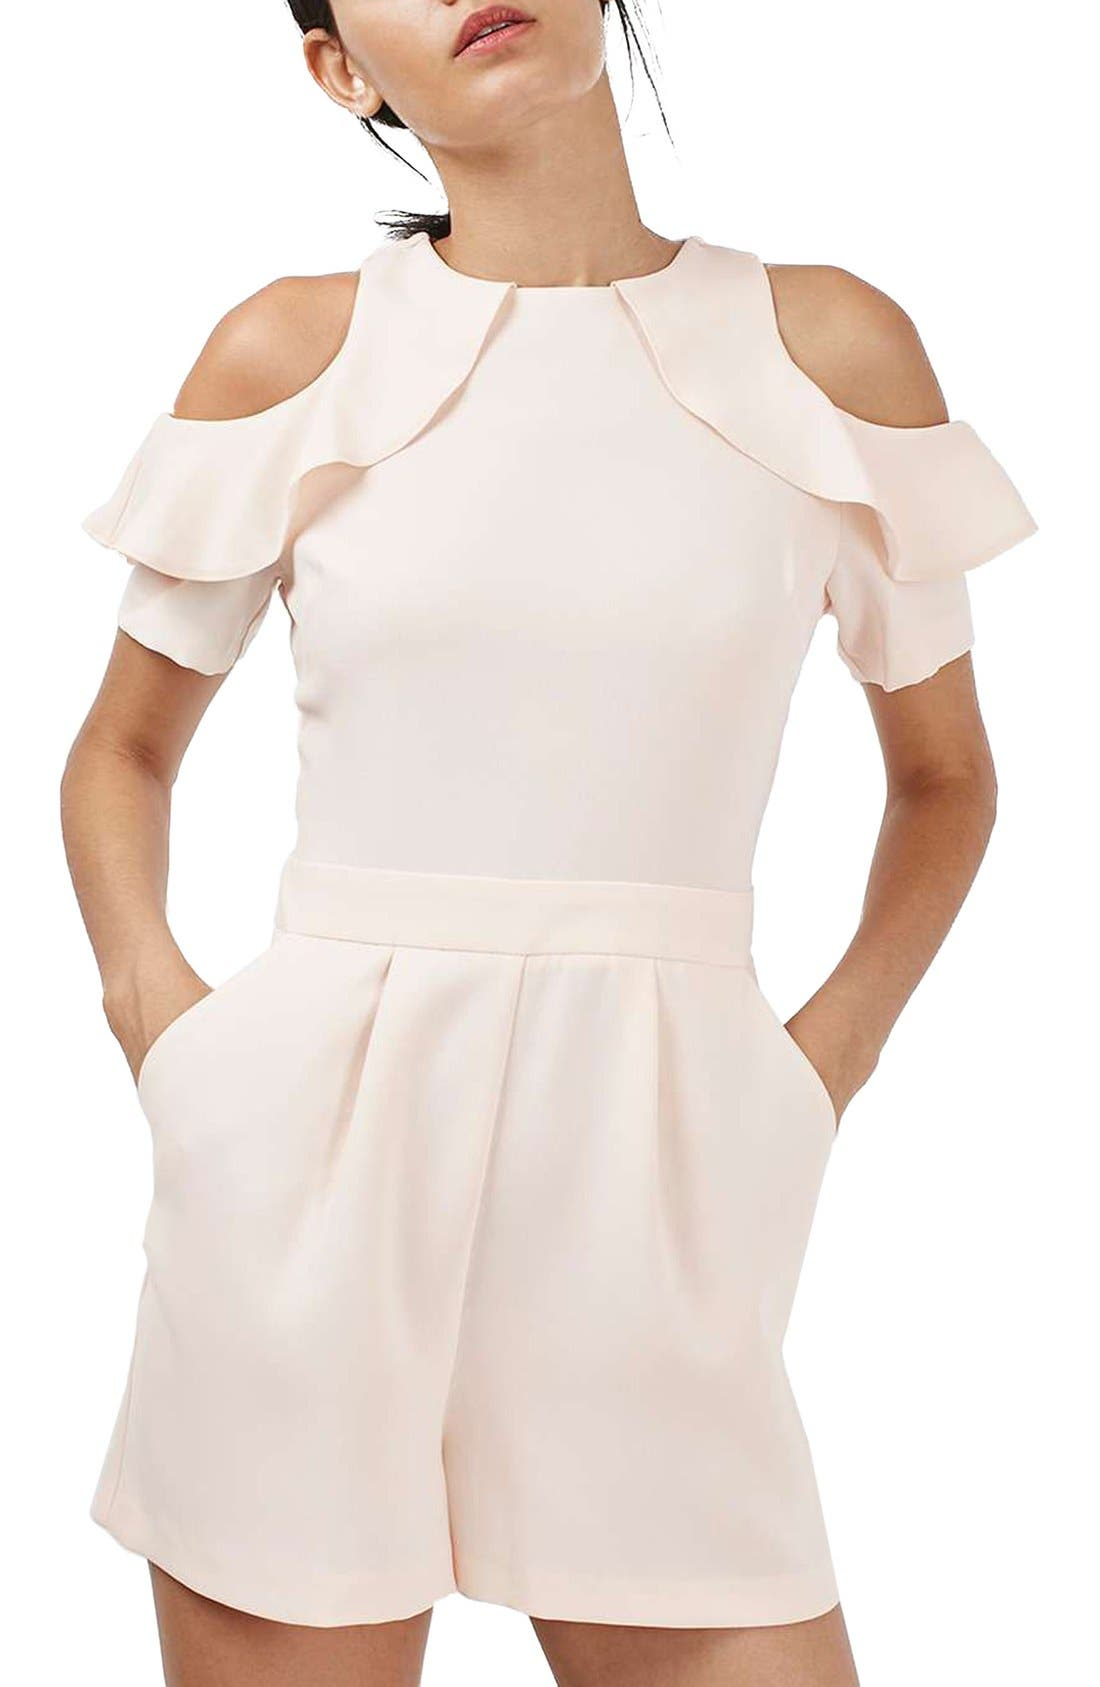 Alternate Image 1 Selected - Topshop Ruffle Cold Shoulder Romper